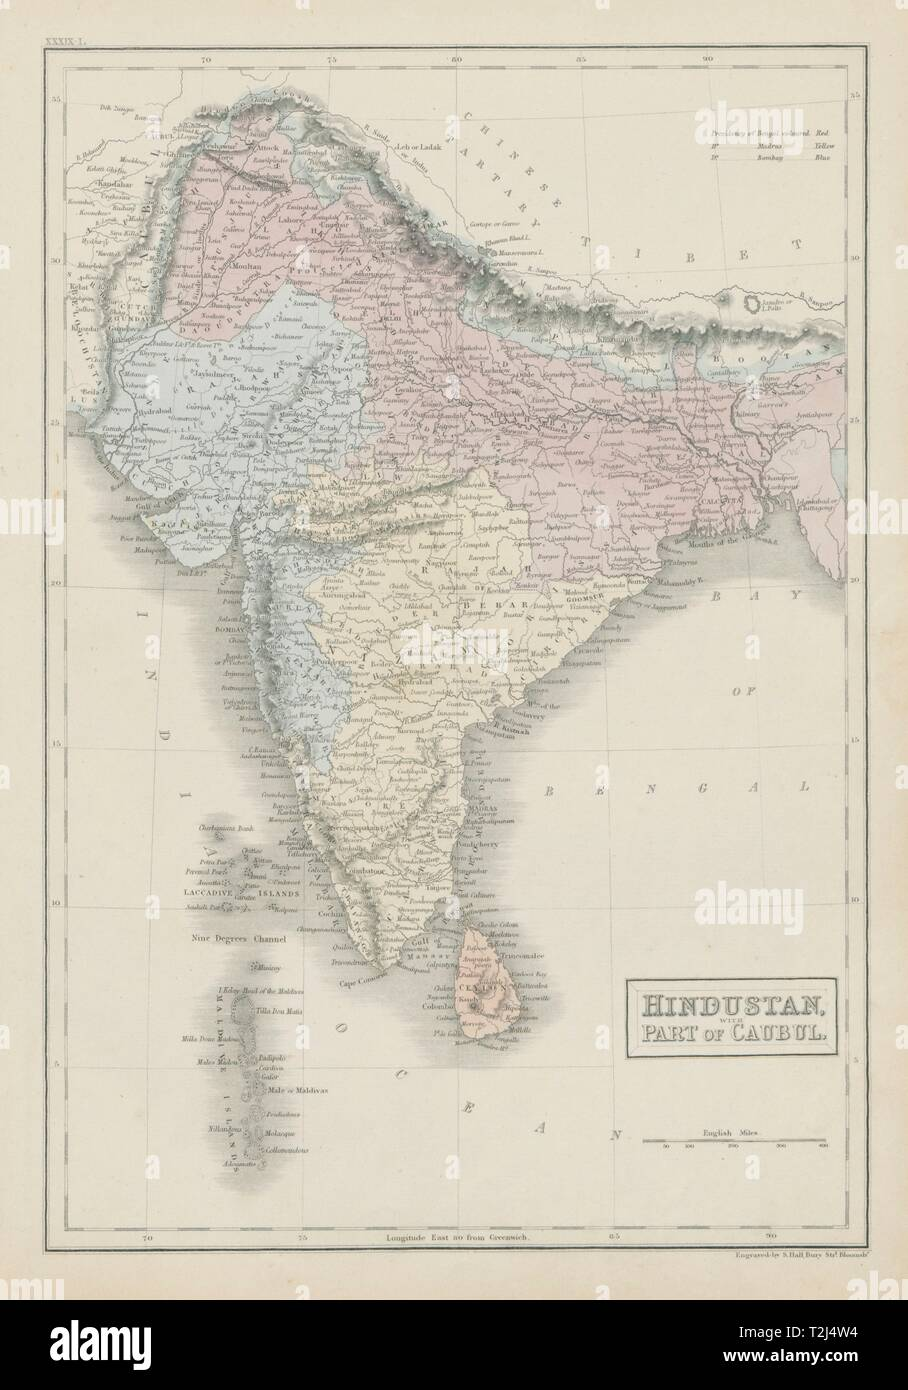 Hindustan with part of Caubul. British India & Afghanistan. SIDNEY HALL 1856 map - Stock Image